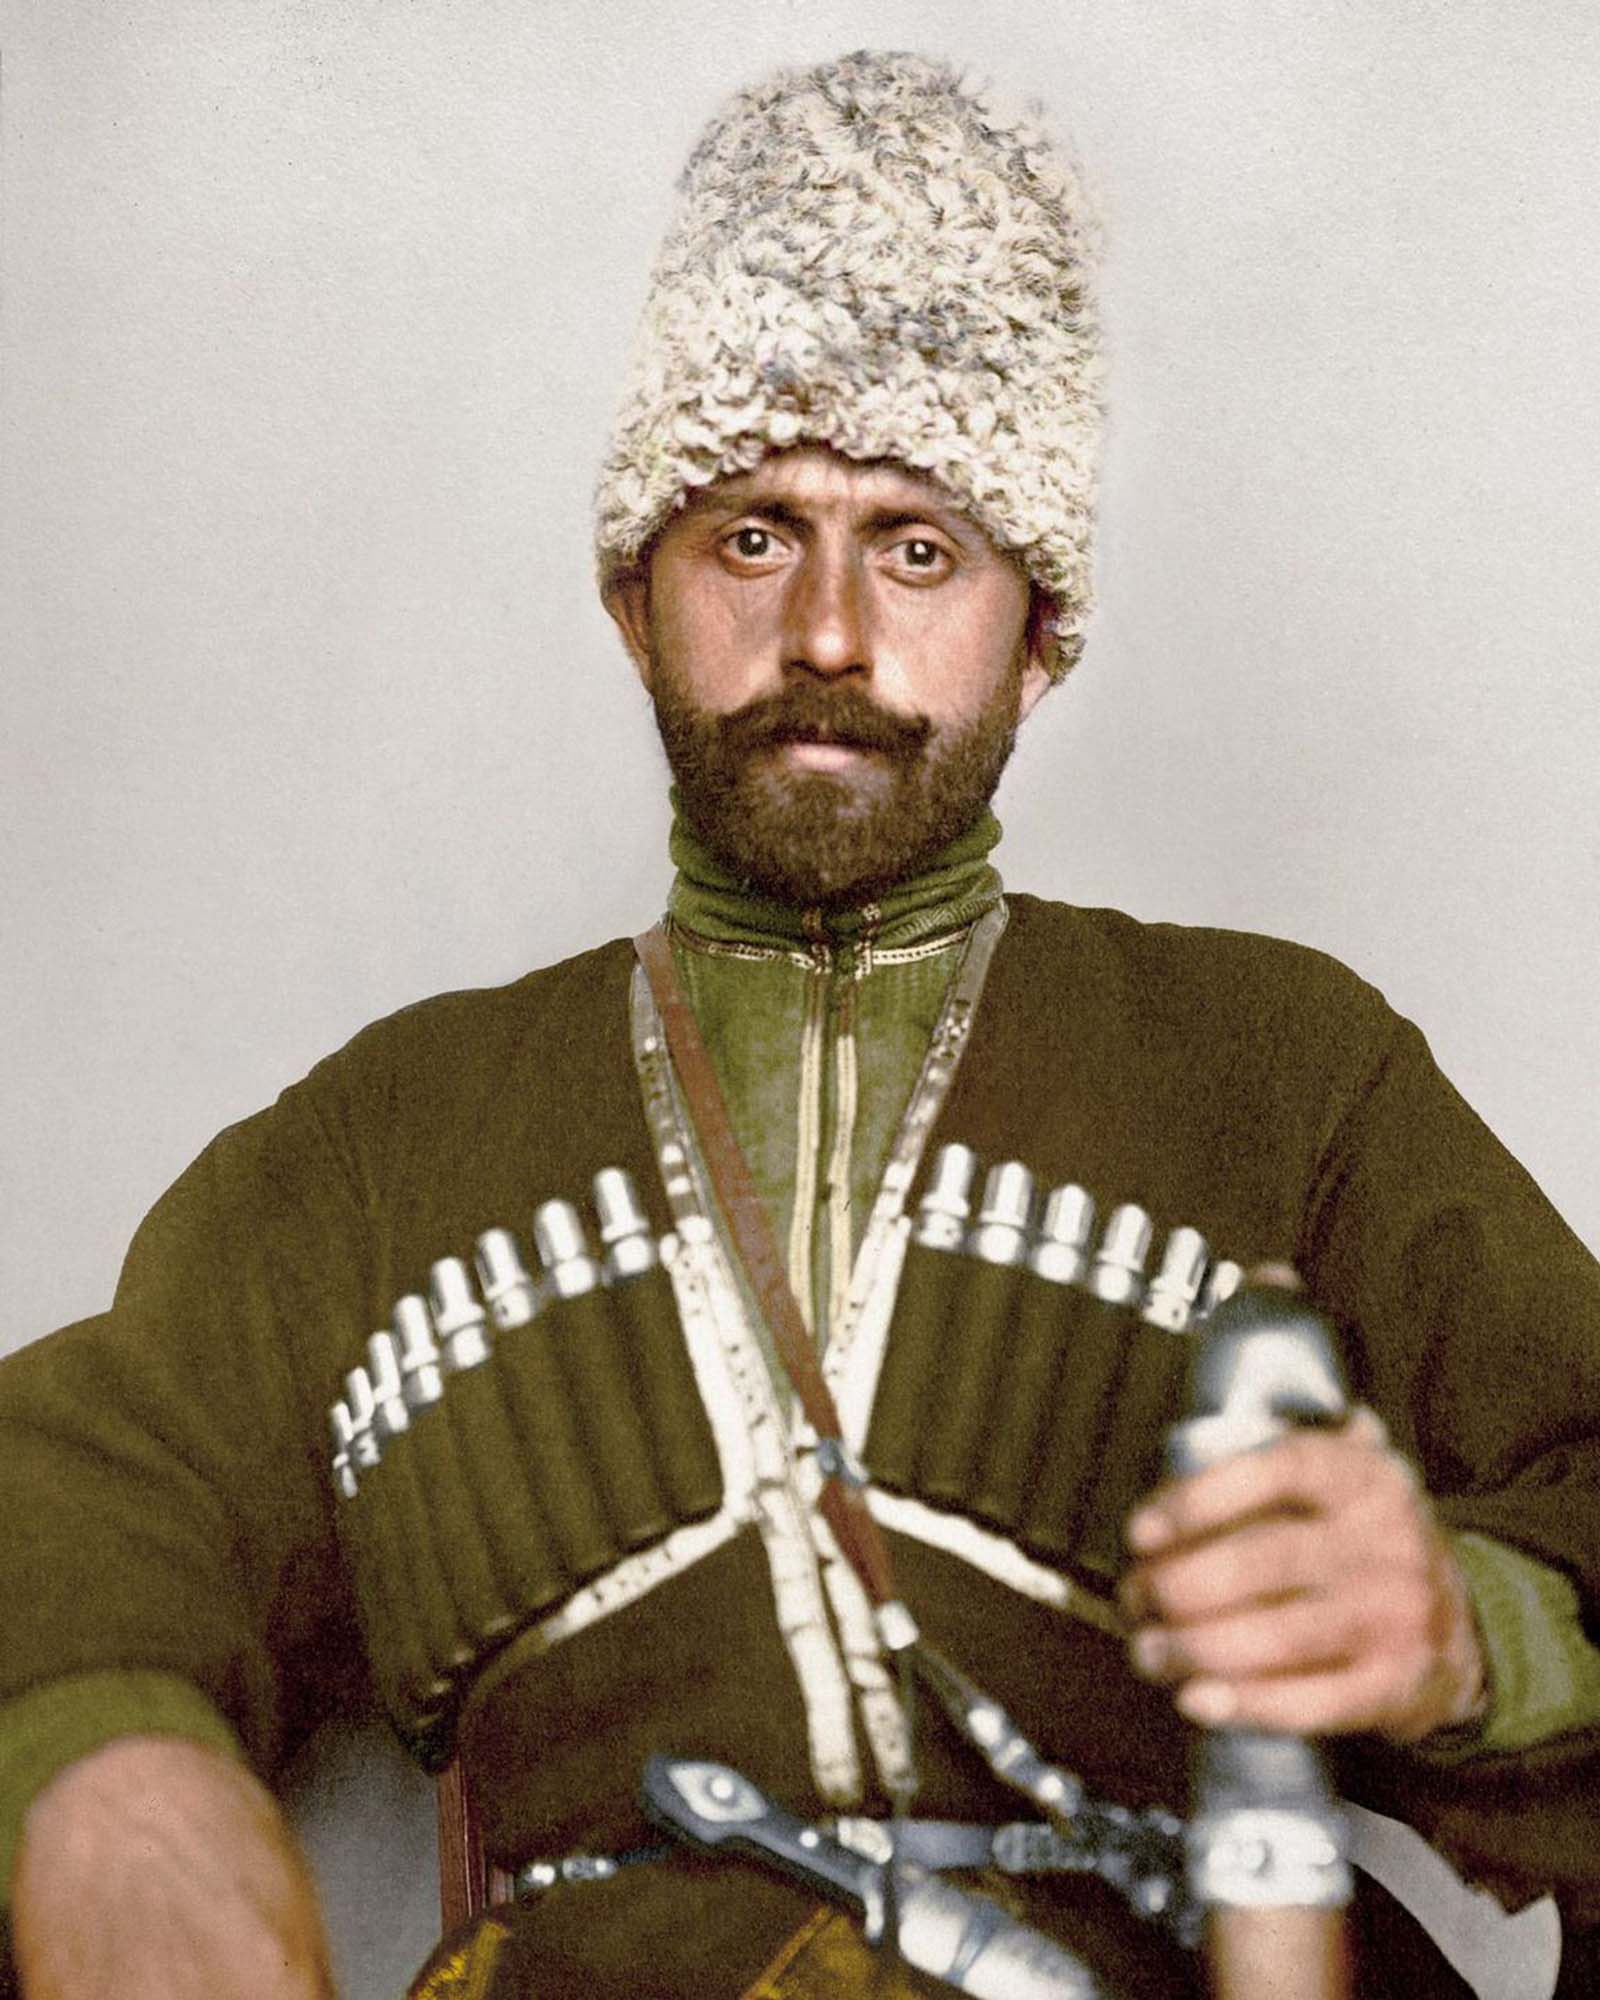 """Cossack man."""" The Cossacks were famed soldiers that, by the time of this photograph, had evolved into a military class that served as border guards or police. A Cossack soldier was required to provide his own arms, horses and uniform at his own expense. This man is most likely from the Ussuri Cossac"""